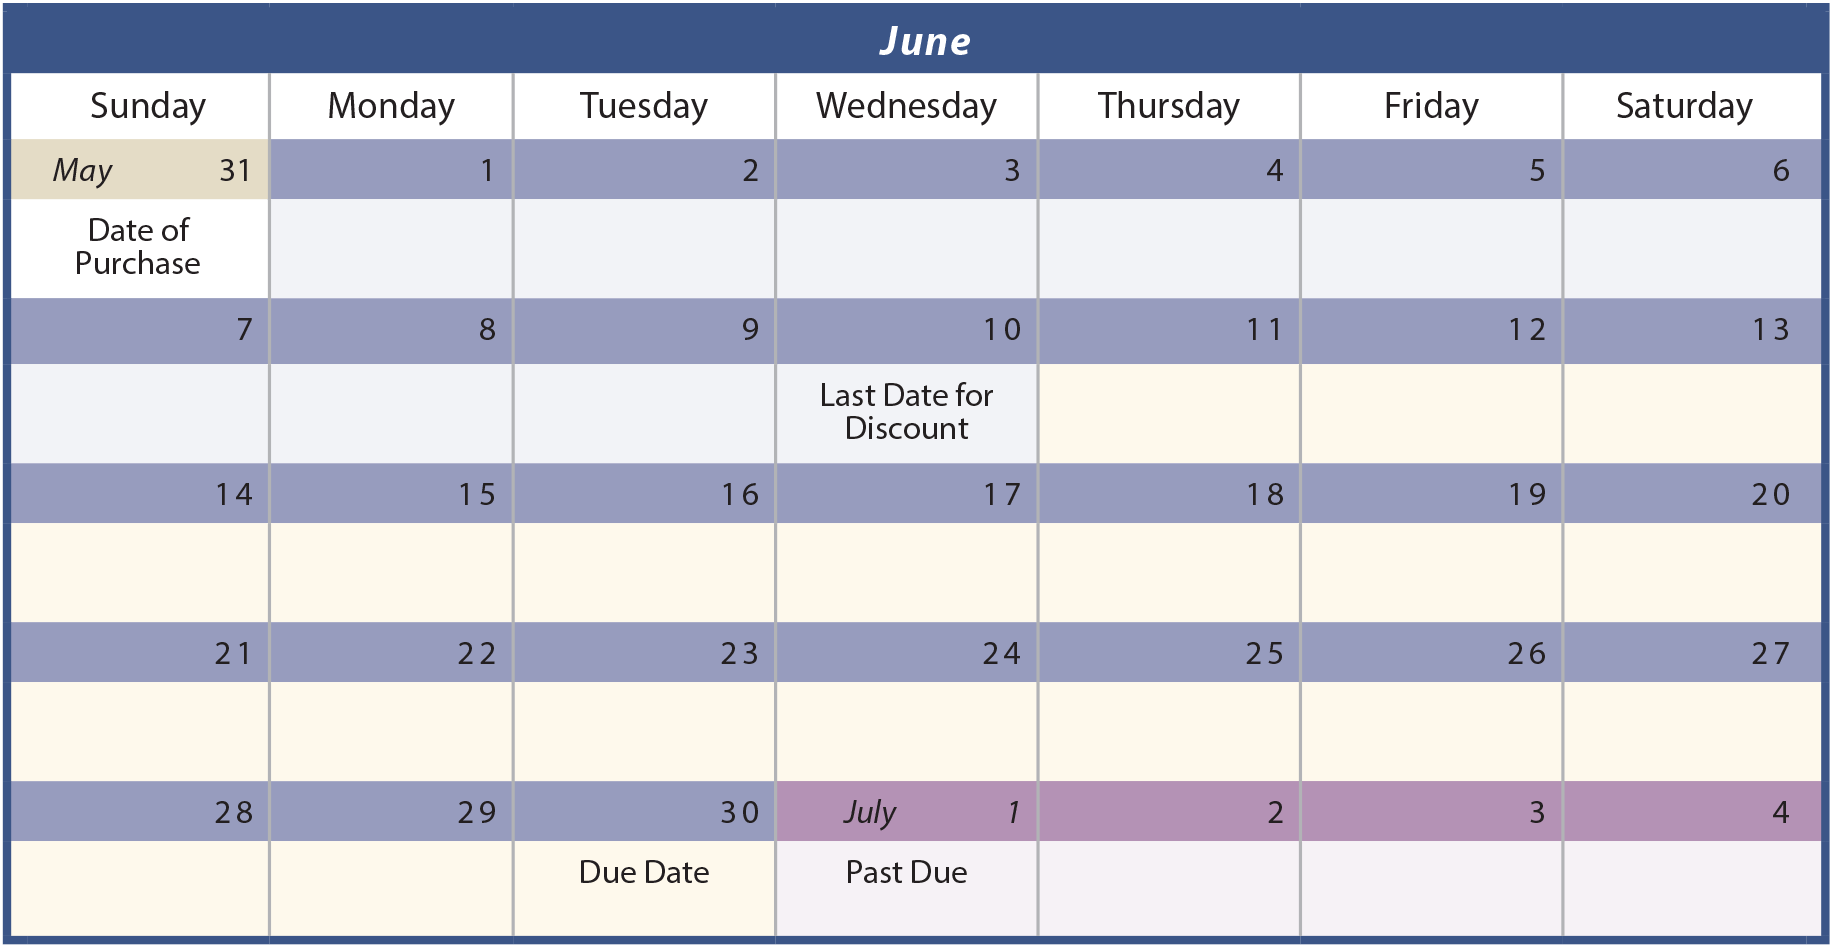 Calendar Illustration Png : Purchase considerations for merchandising businesses